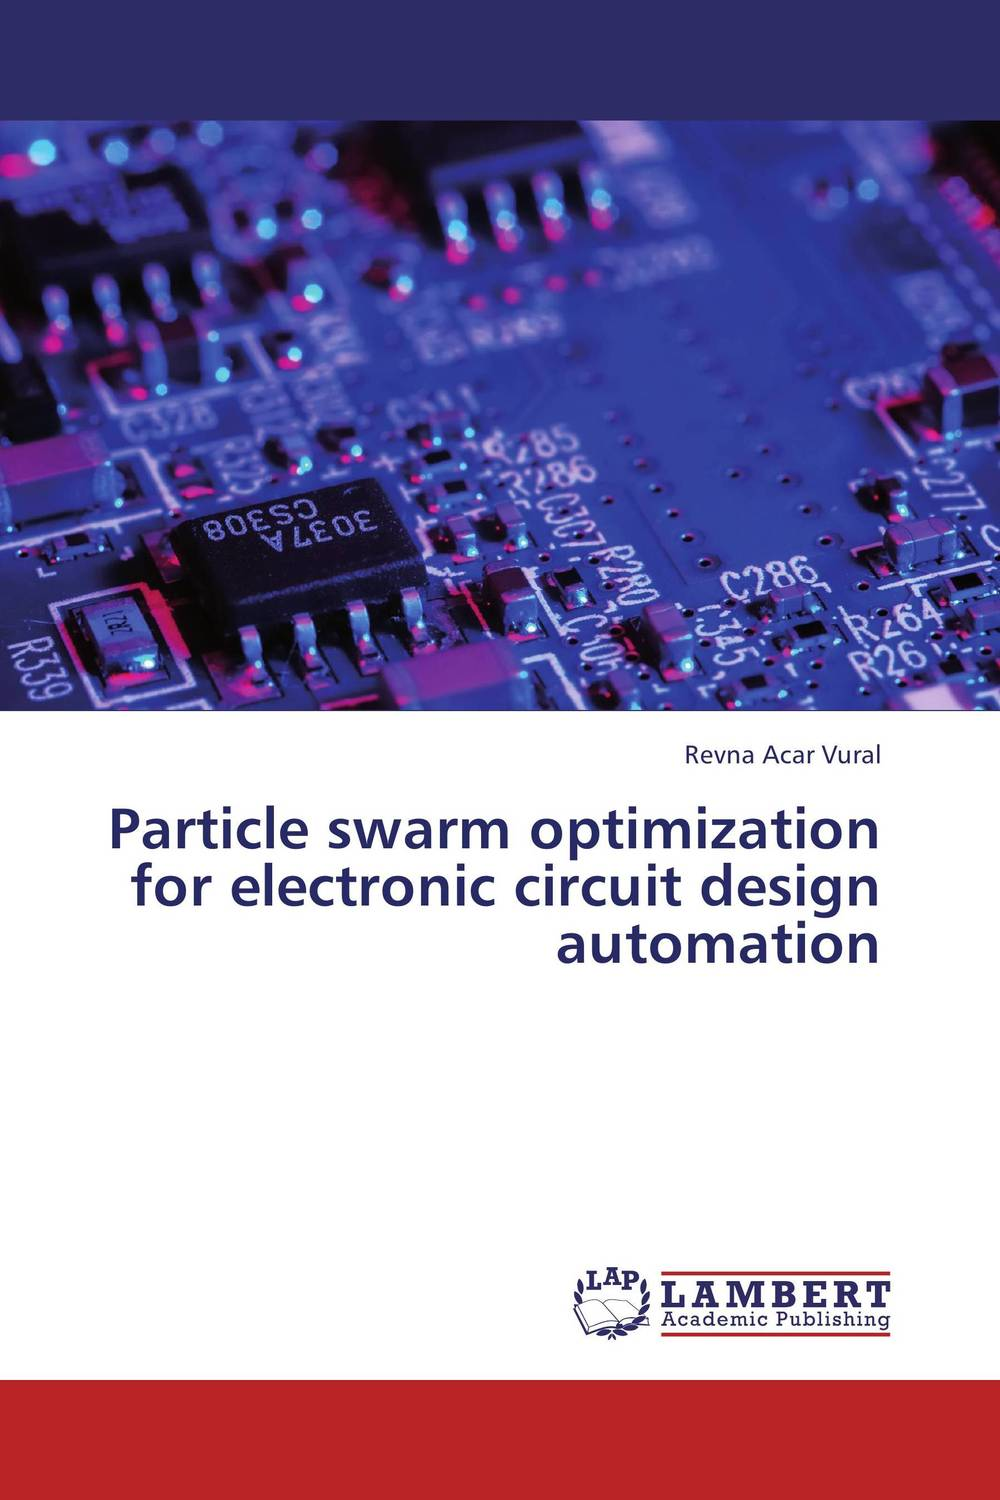 Particle swarm optimization for electronic circuit design automation optimization of design parameters for the rigid drive disc of clutch